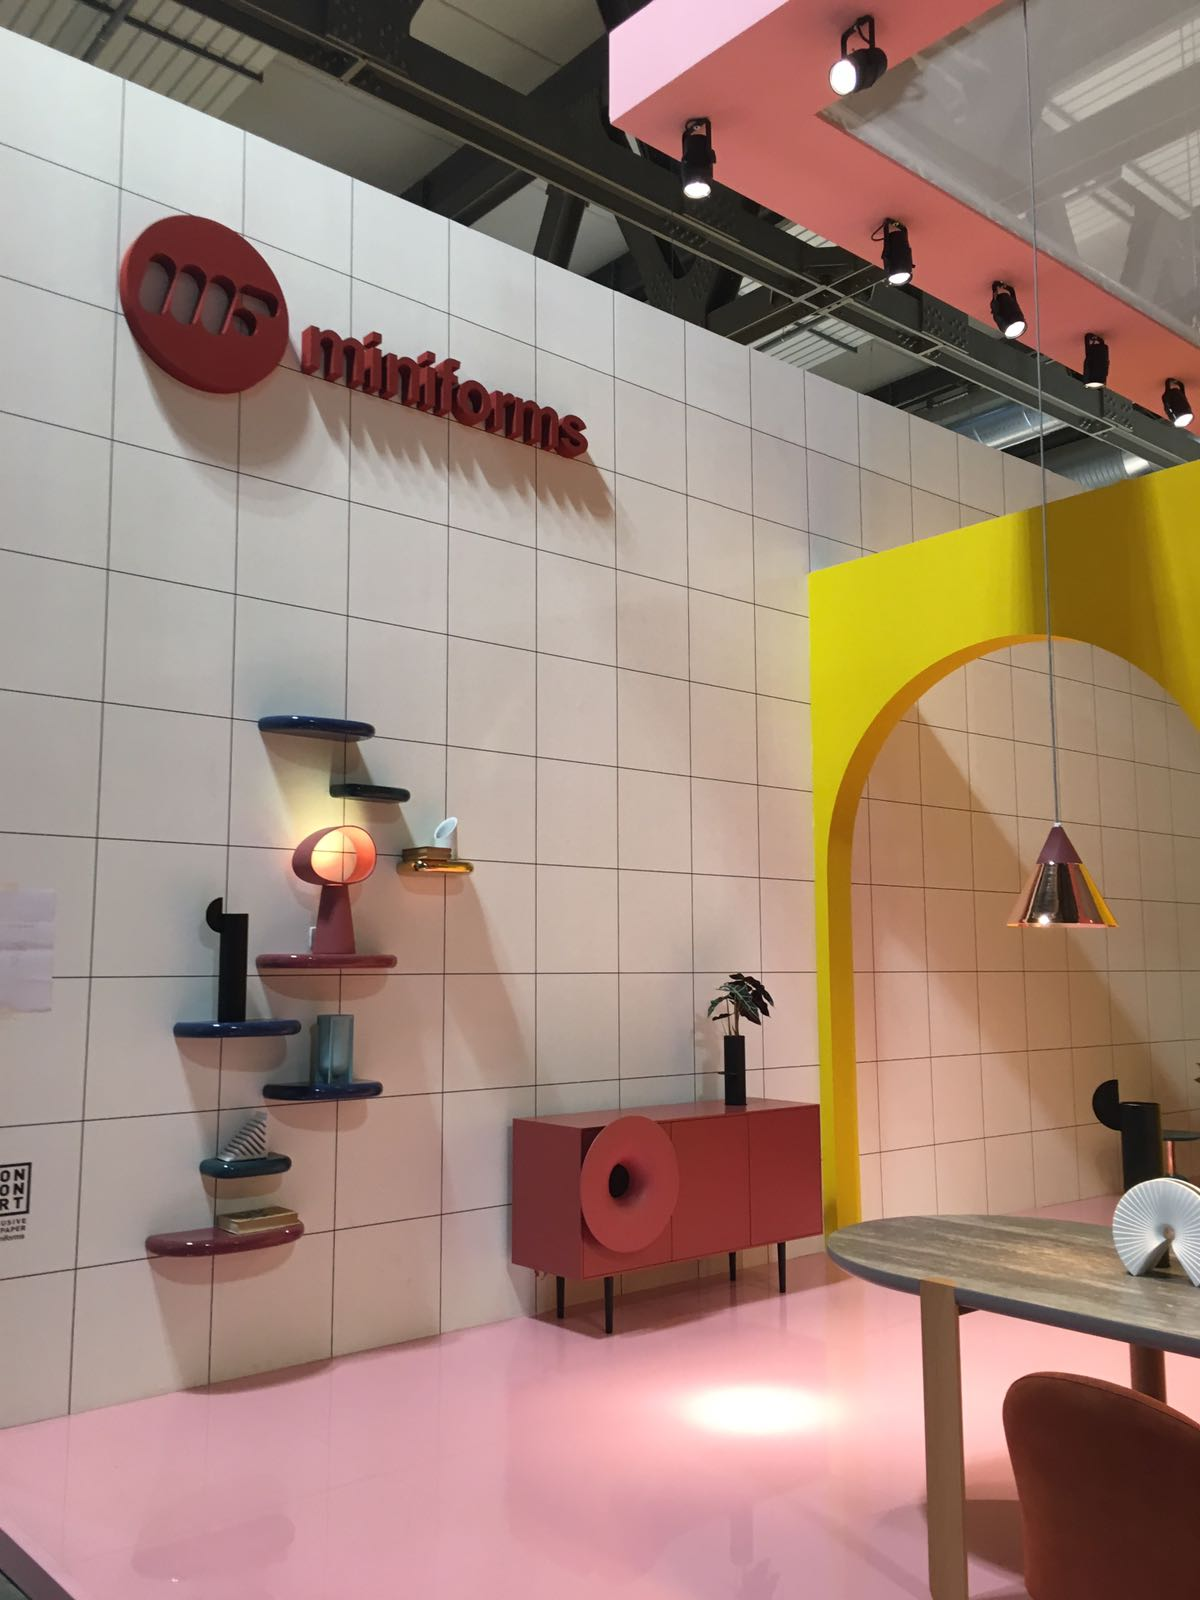 Stands You Must See at Salone del Mobile 2017 Tomorrow salone del mobile 2017 Stands You Must See at Salone del Mobile 2017 Tomorrow Stands You Must See at Salone del Mobile 2017 Tomorrow